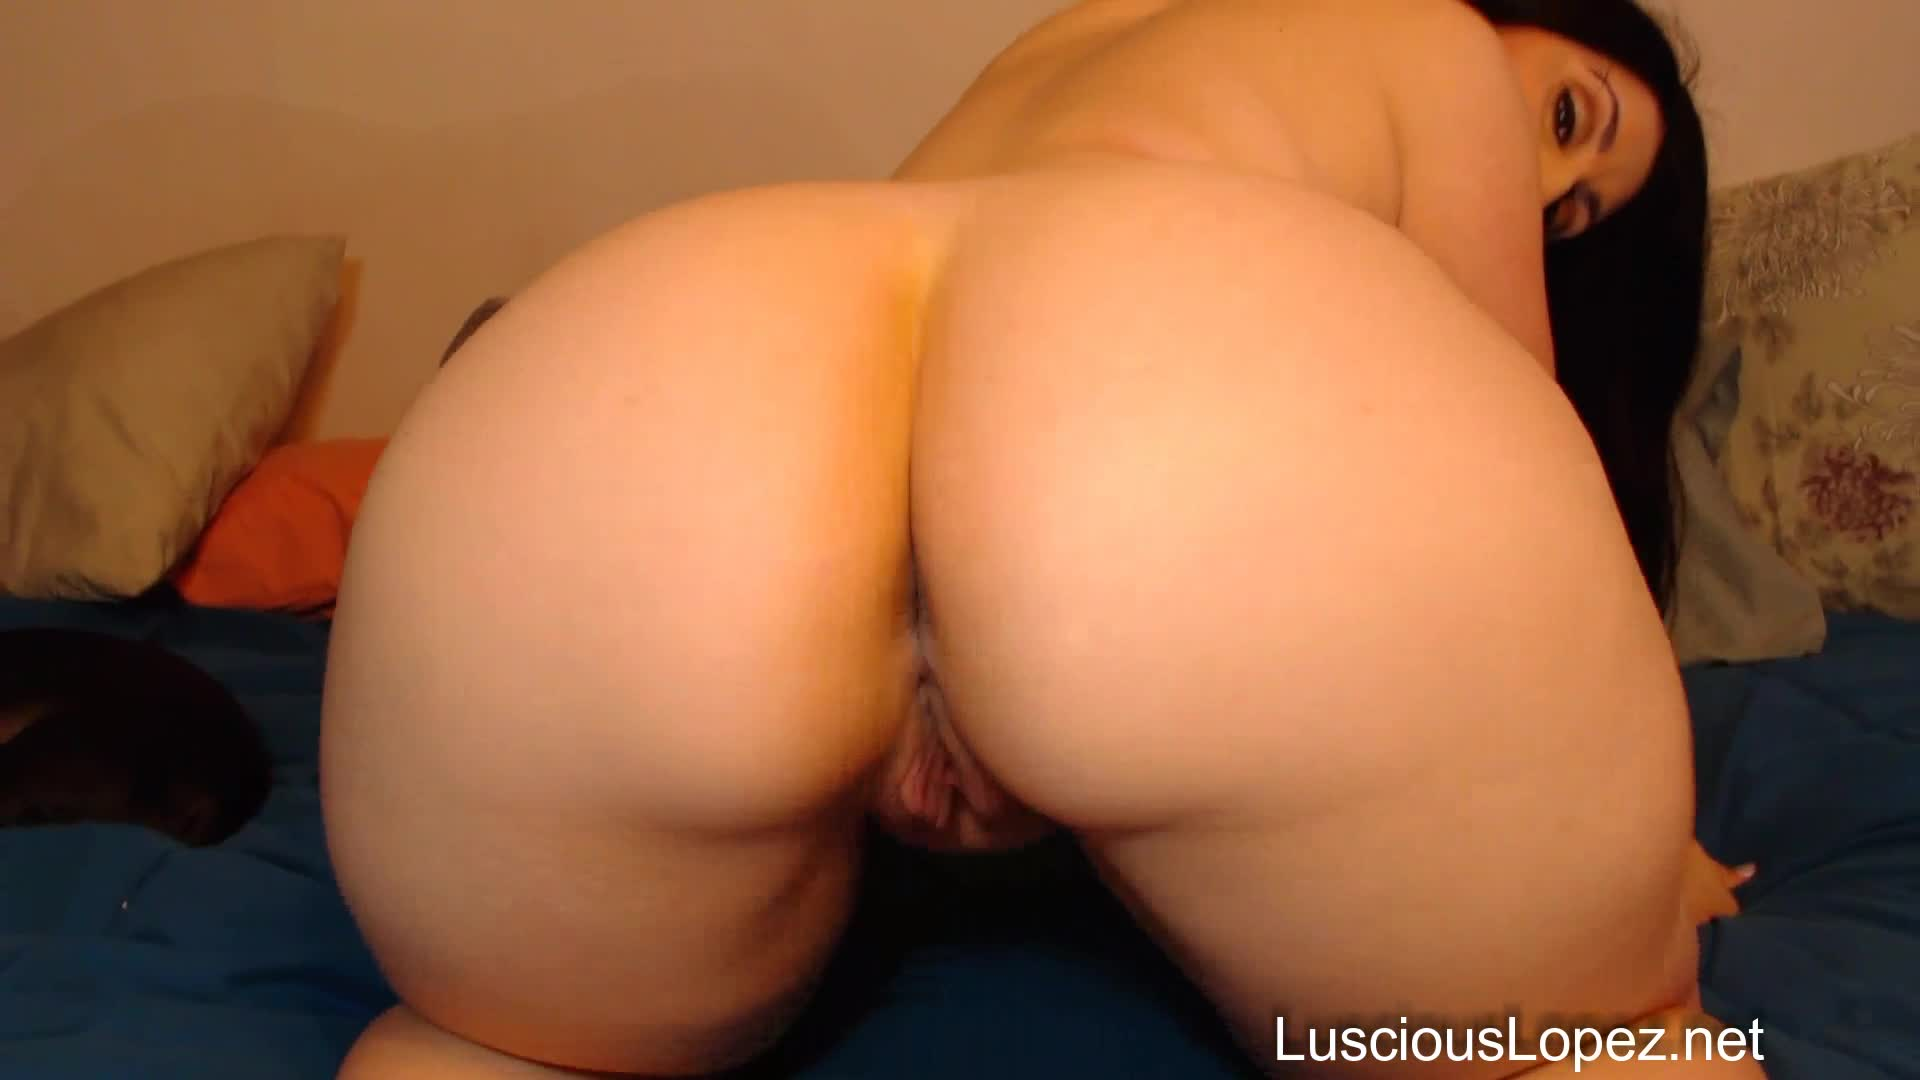 Pov Big Booty White Girl